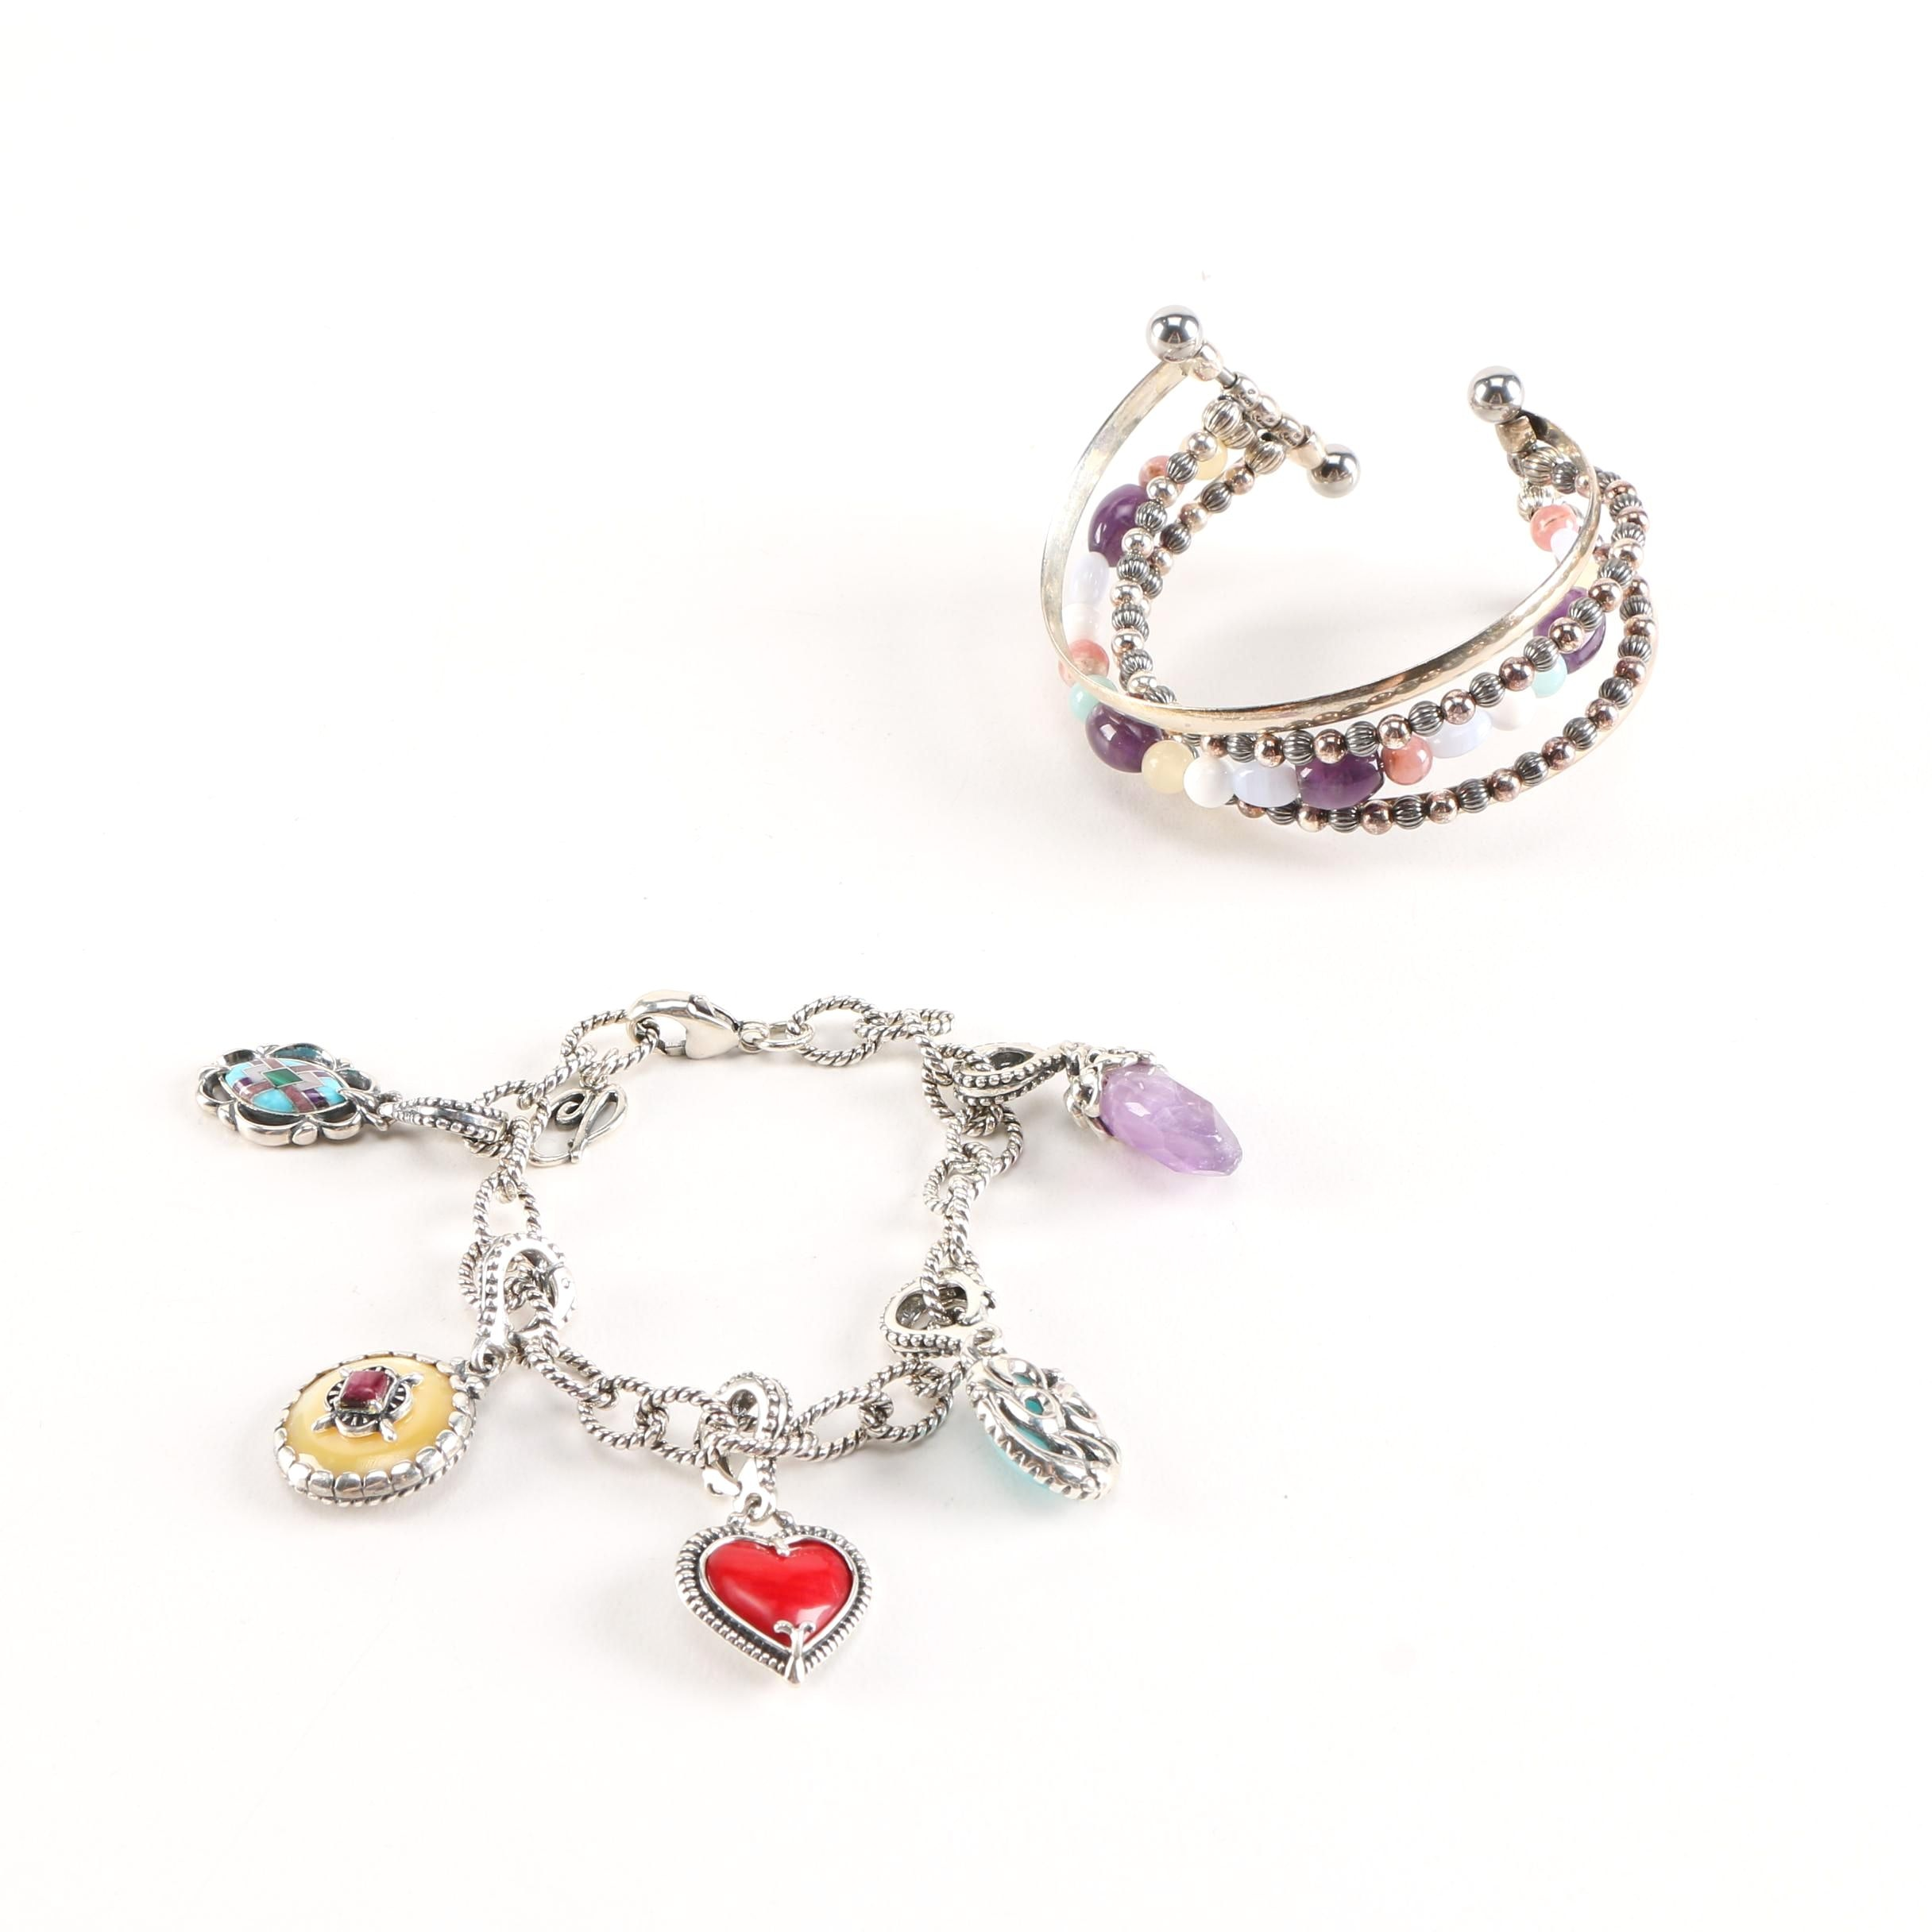 Carolyn Pollack Relios Sterling Bracelets with Gemstone Accents